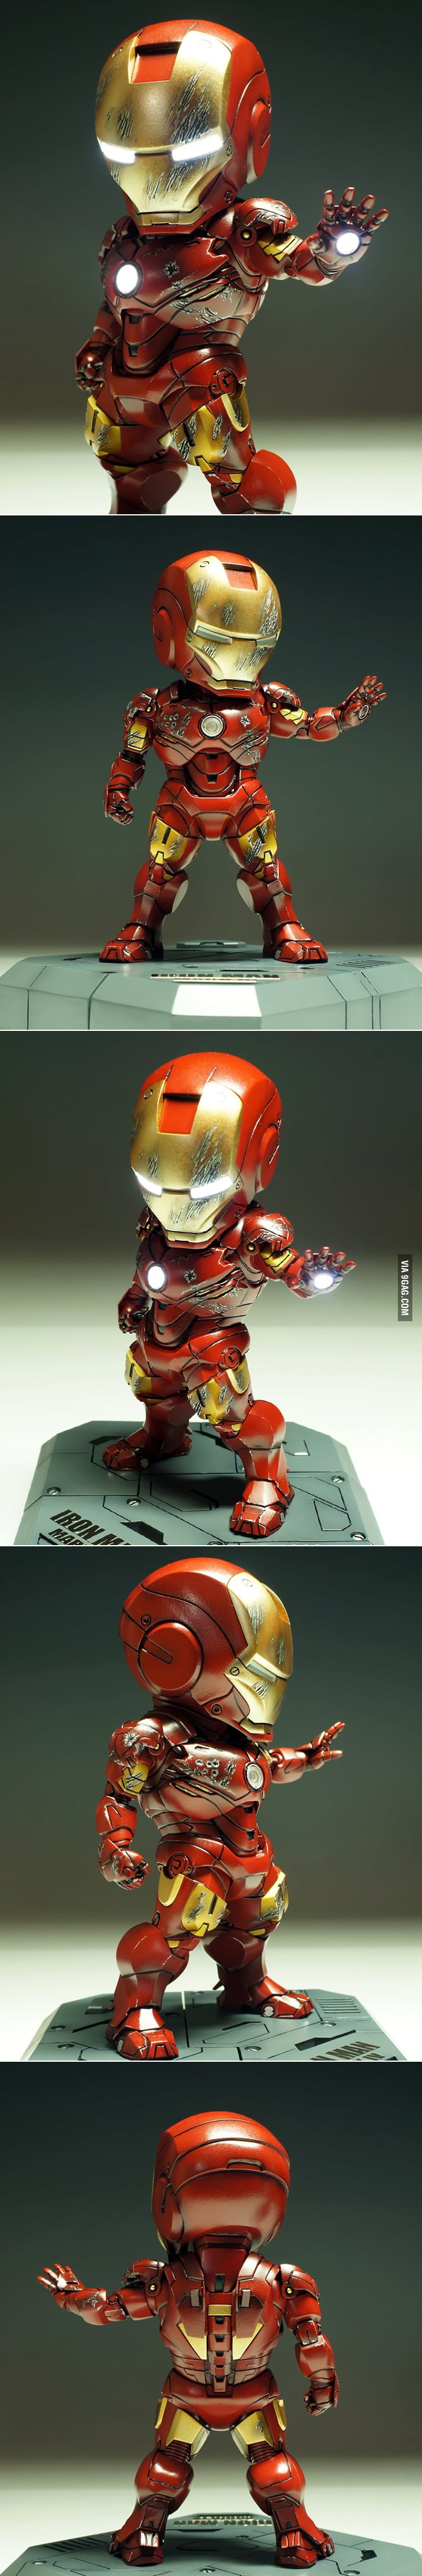 Awesome Iron Man Figure